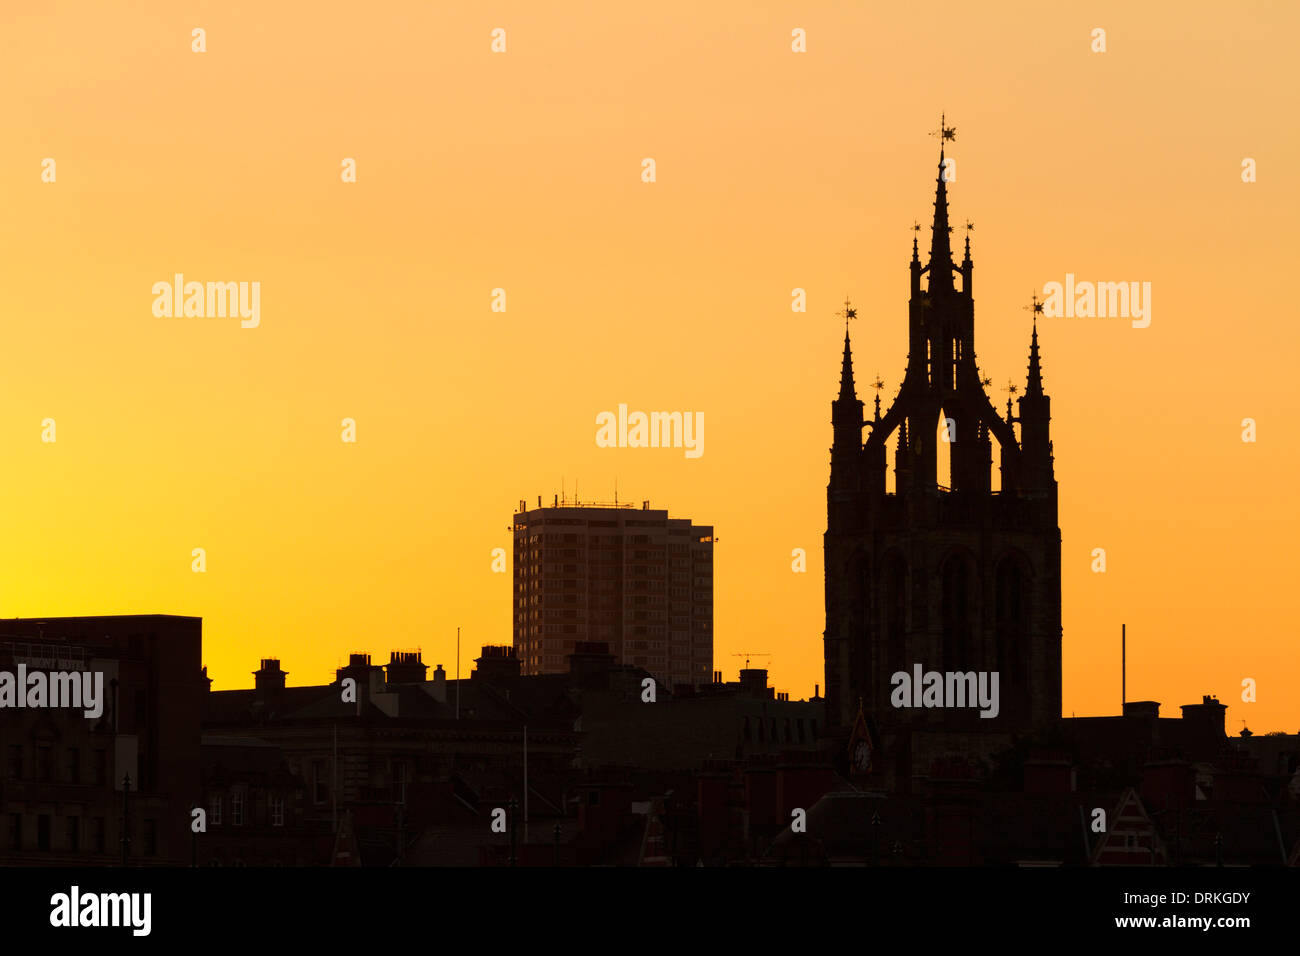 Newcastle upon Tyne buildings at sunset, skyline, England Stock Photo